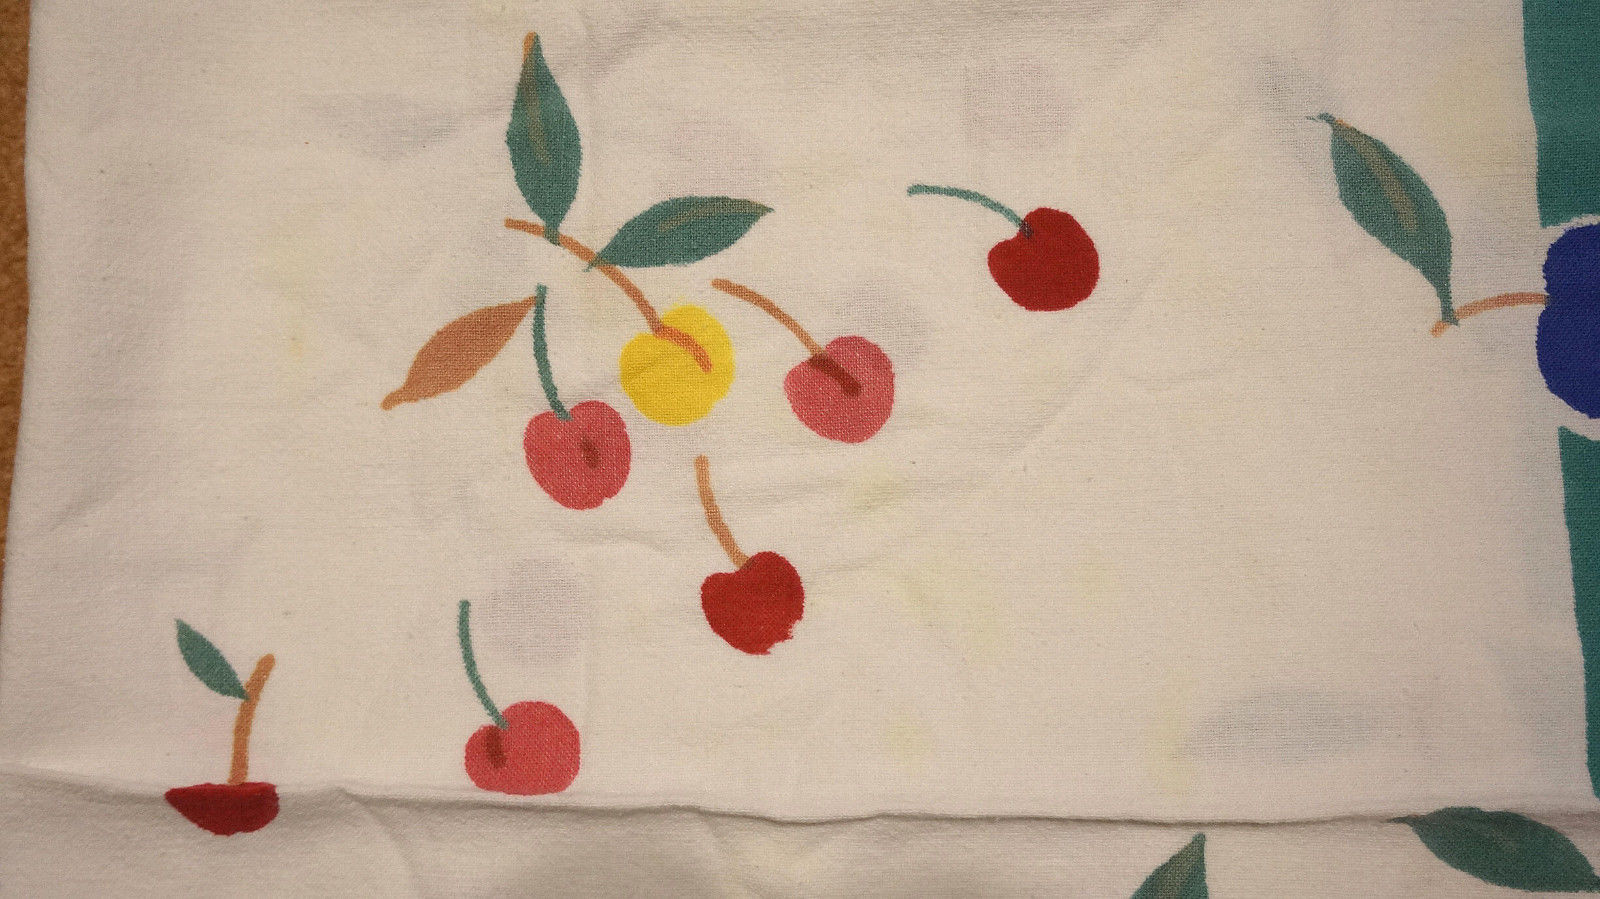 Colorful Vintage 50s Cotton Cherries Fruit Tablecloth Pears Apples Grapes Peach image 4